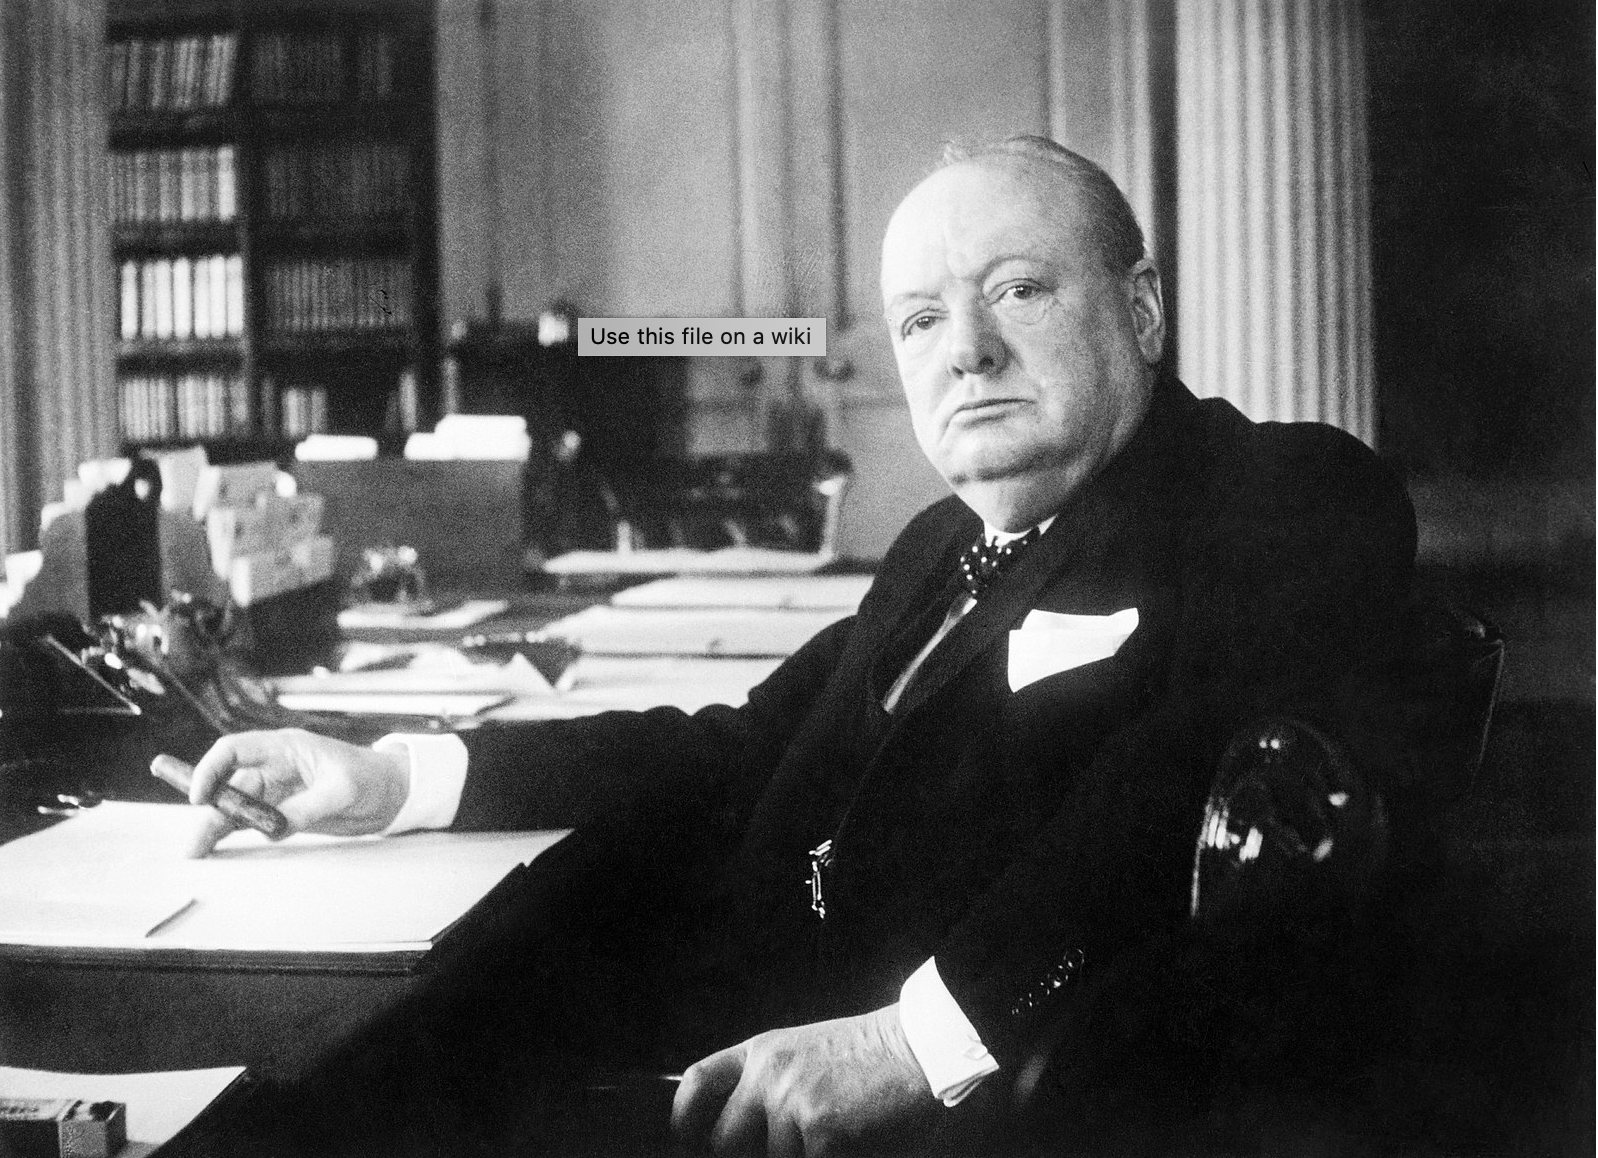 Historians slam BBC report claiming Winston Churchill was behind 'mass killing' of millions during 1943 Bengal famine